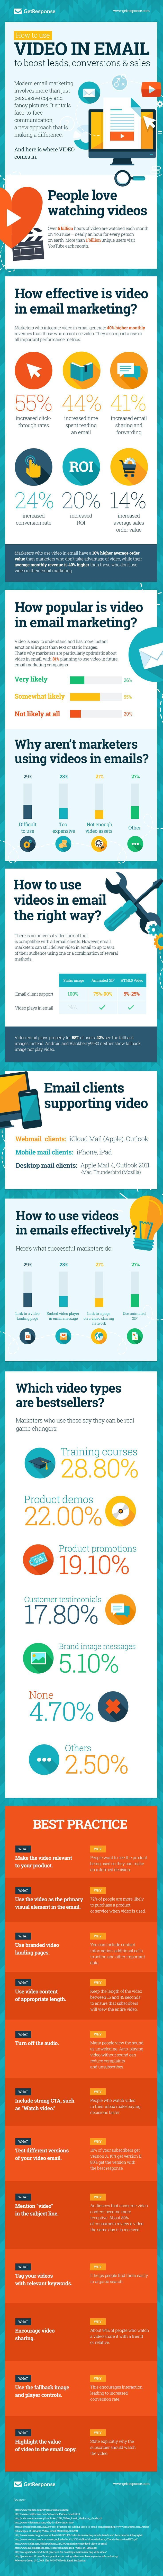 Video in Email - Here is What You Need to Increase Engagement and Conversions in your Marketing.in an Infographic Guide.